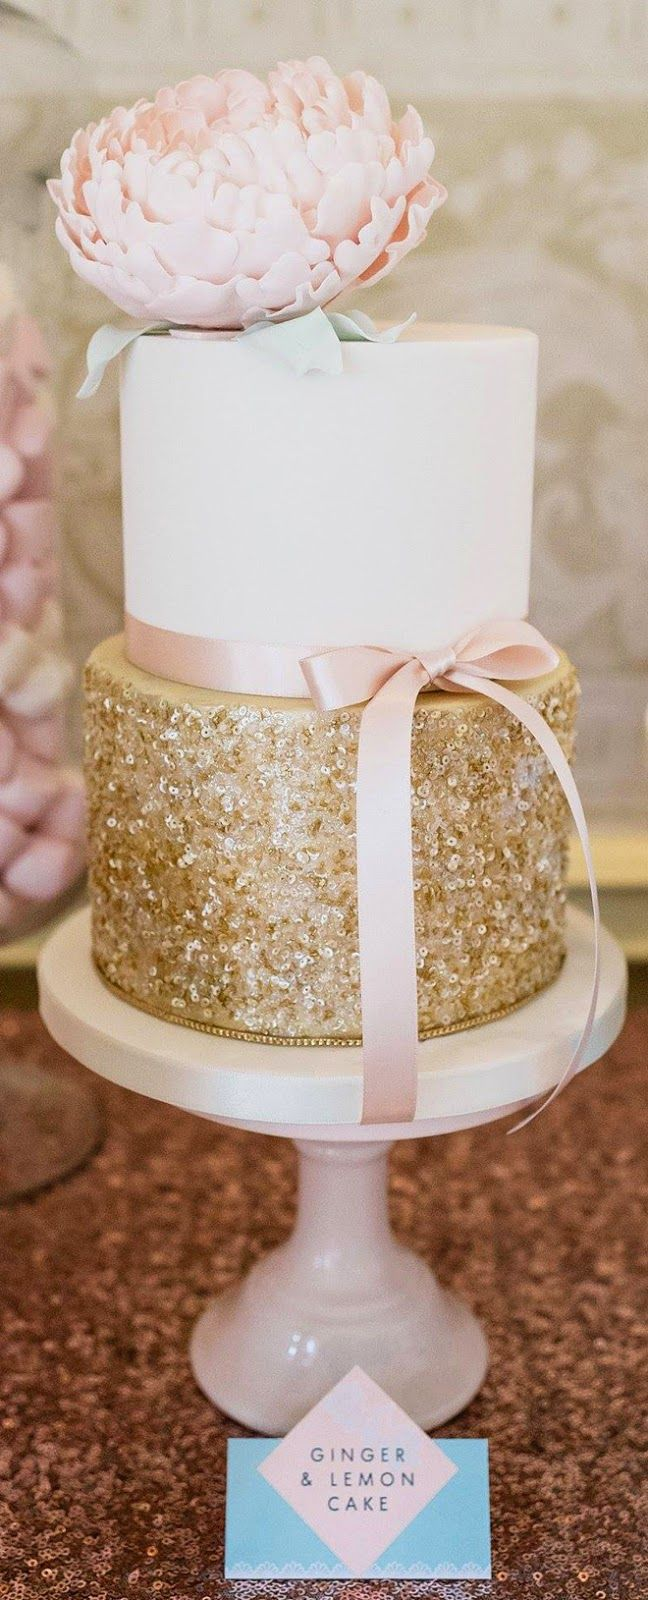 Wedding Trends : Metallic Cakes - Belle The Magazine www.MadamPaloozaEmporium.com www.facebook.com/MadamPalooza